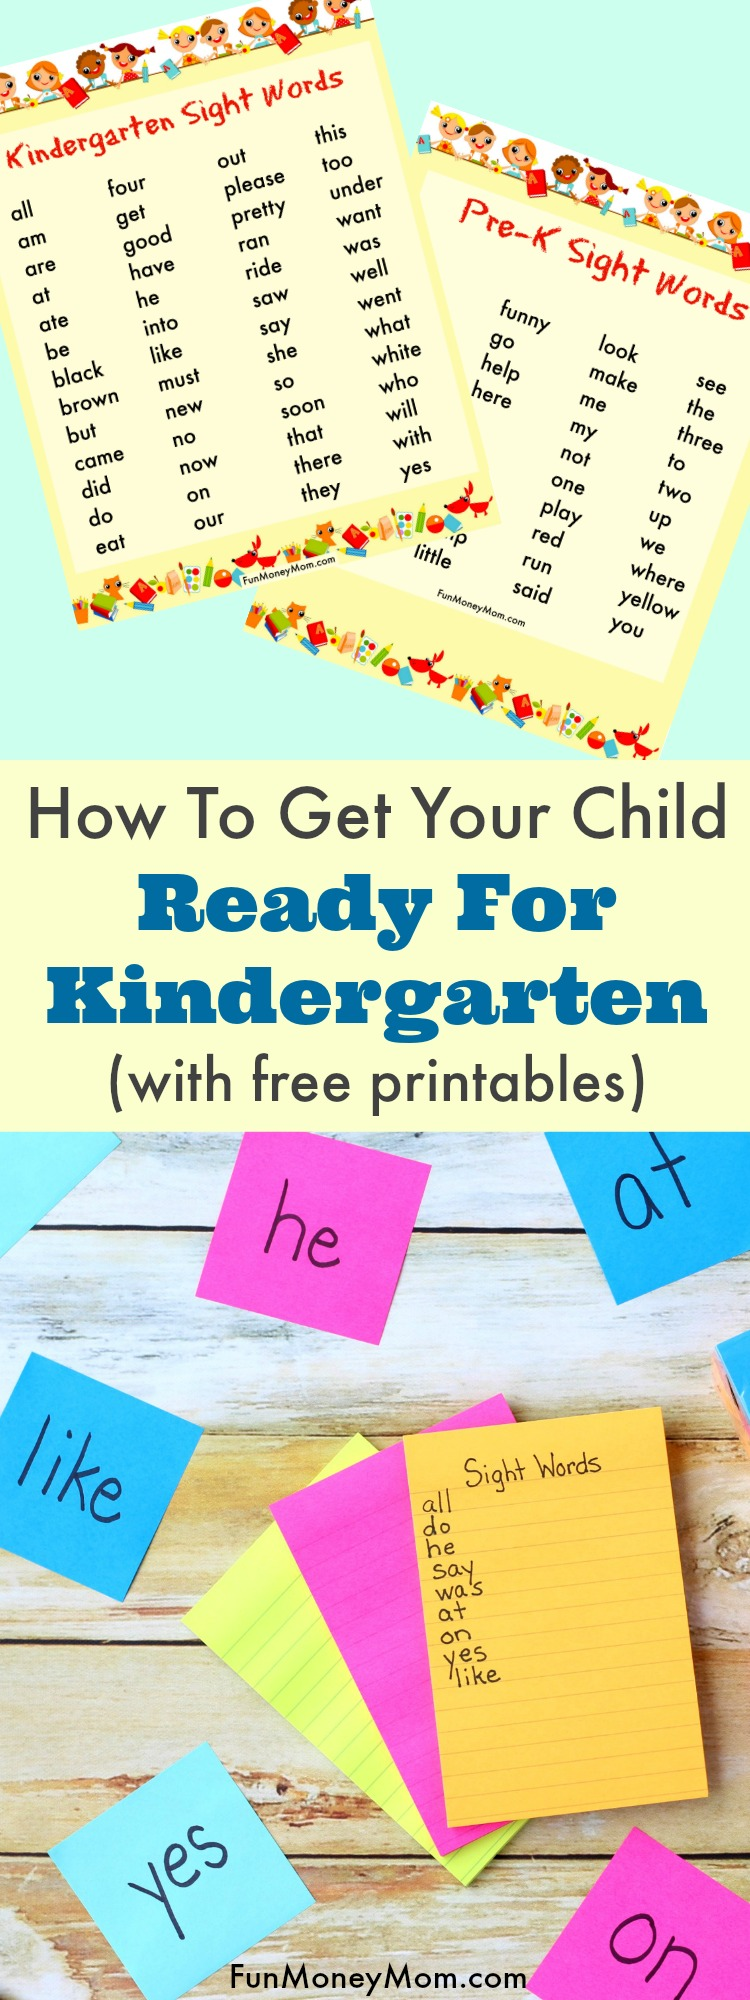 Is your little one starting school this year? You can help them get ready for Kindergarten by practicing the Kindergarten sight words ahead of time. Make it a fun learning game and they'll be reading before you know it. #BackToSchoolGoals #AD